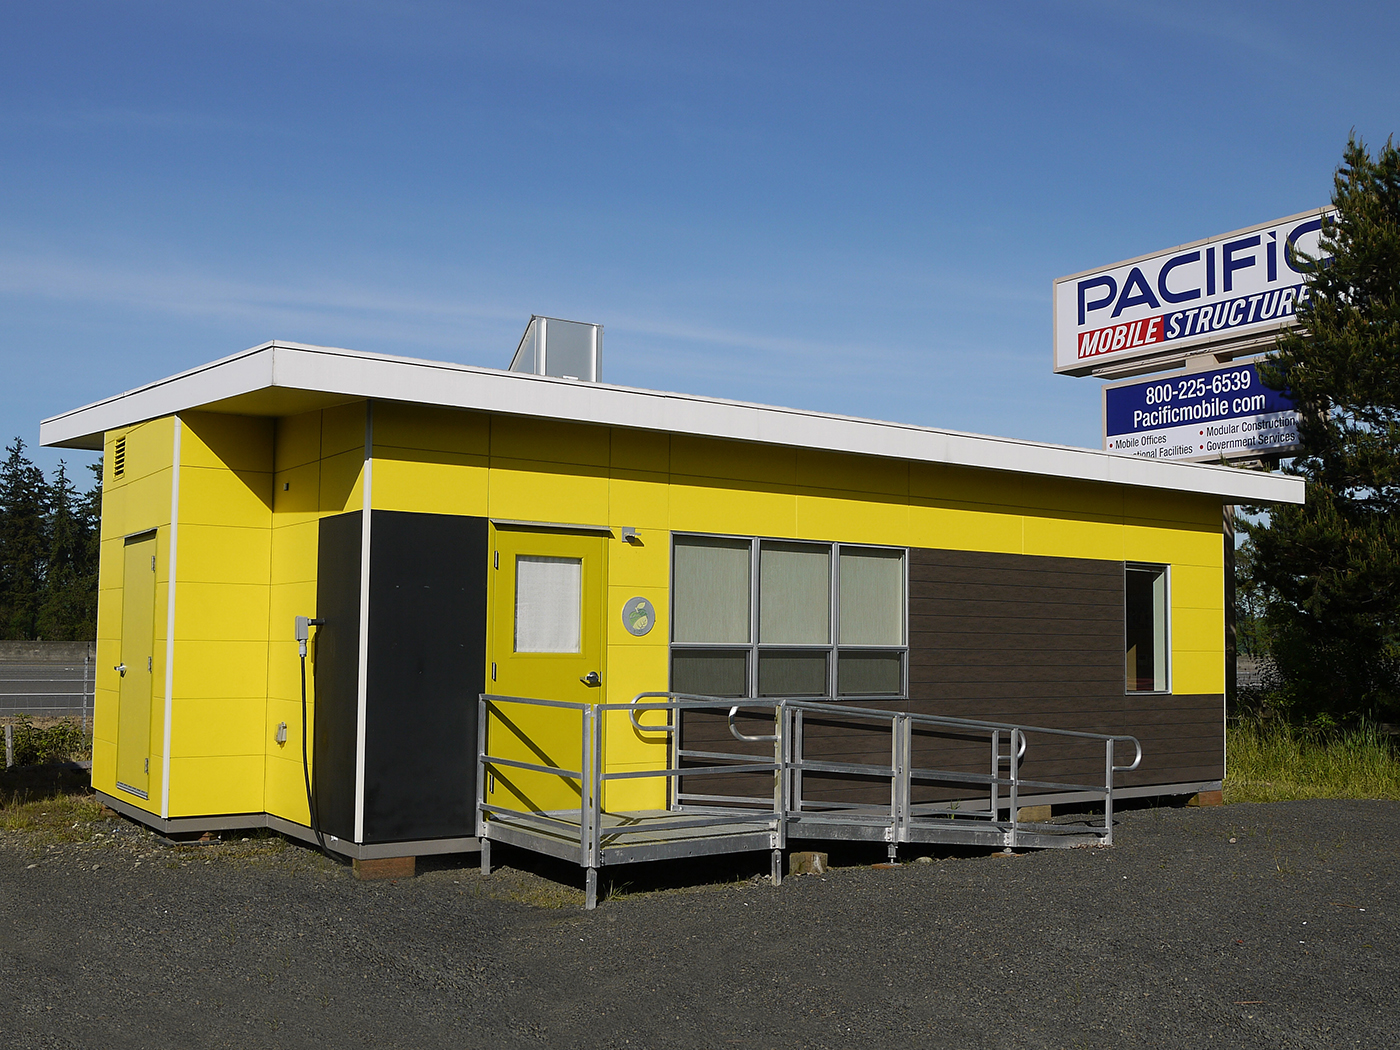 Sage Modular Classroom ~ Seattle djc local business news and data environment